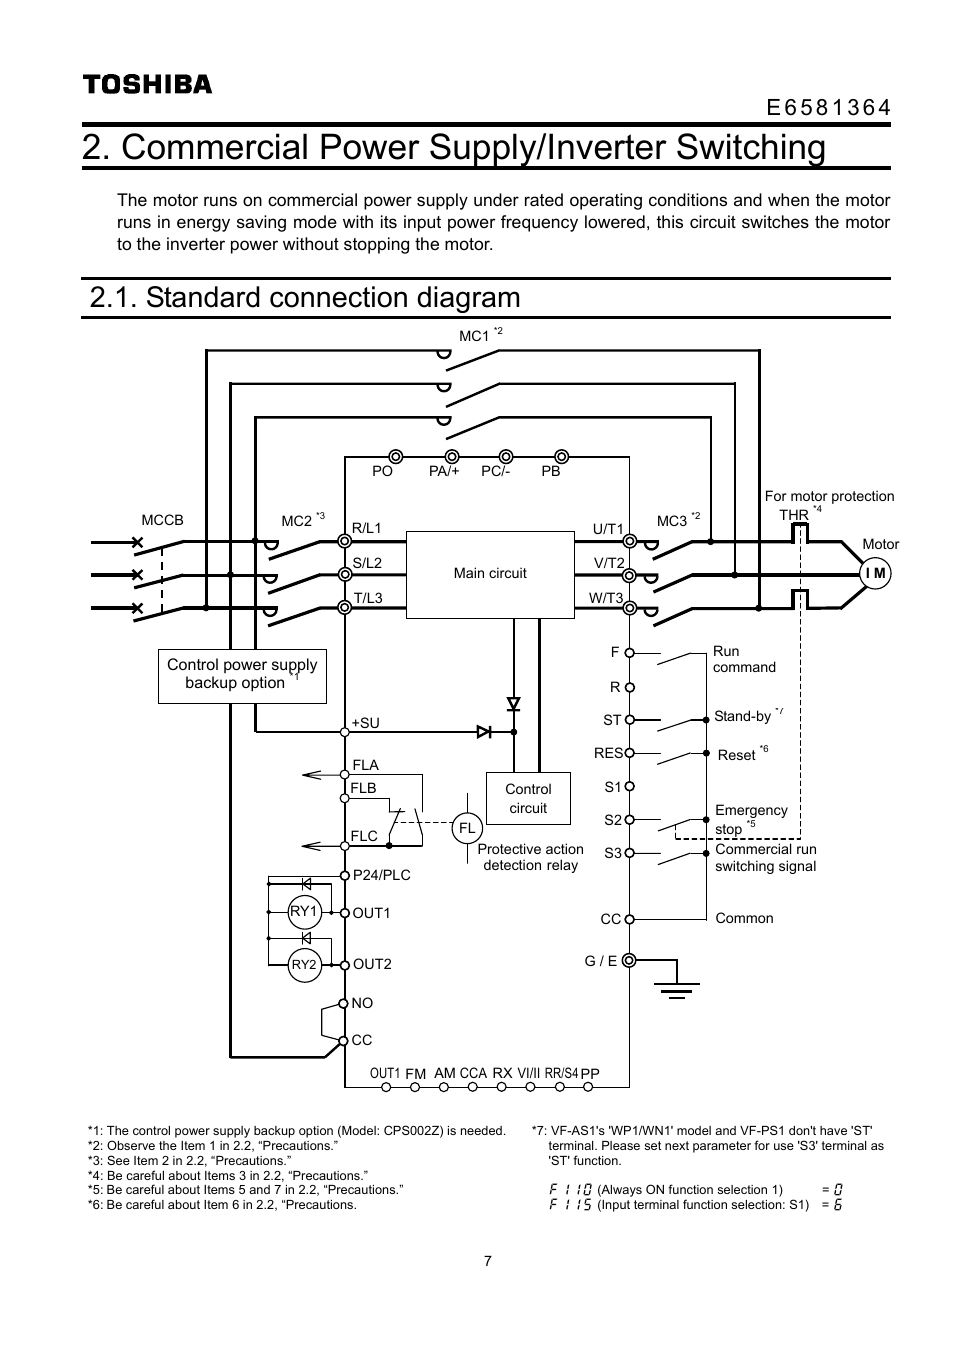 Commercial power supply/inverter switching, Standard connection diagram    Toshiba VF-AS1 User Manual   Page 8 / 10Manuals Directory